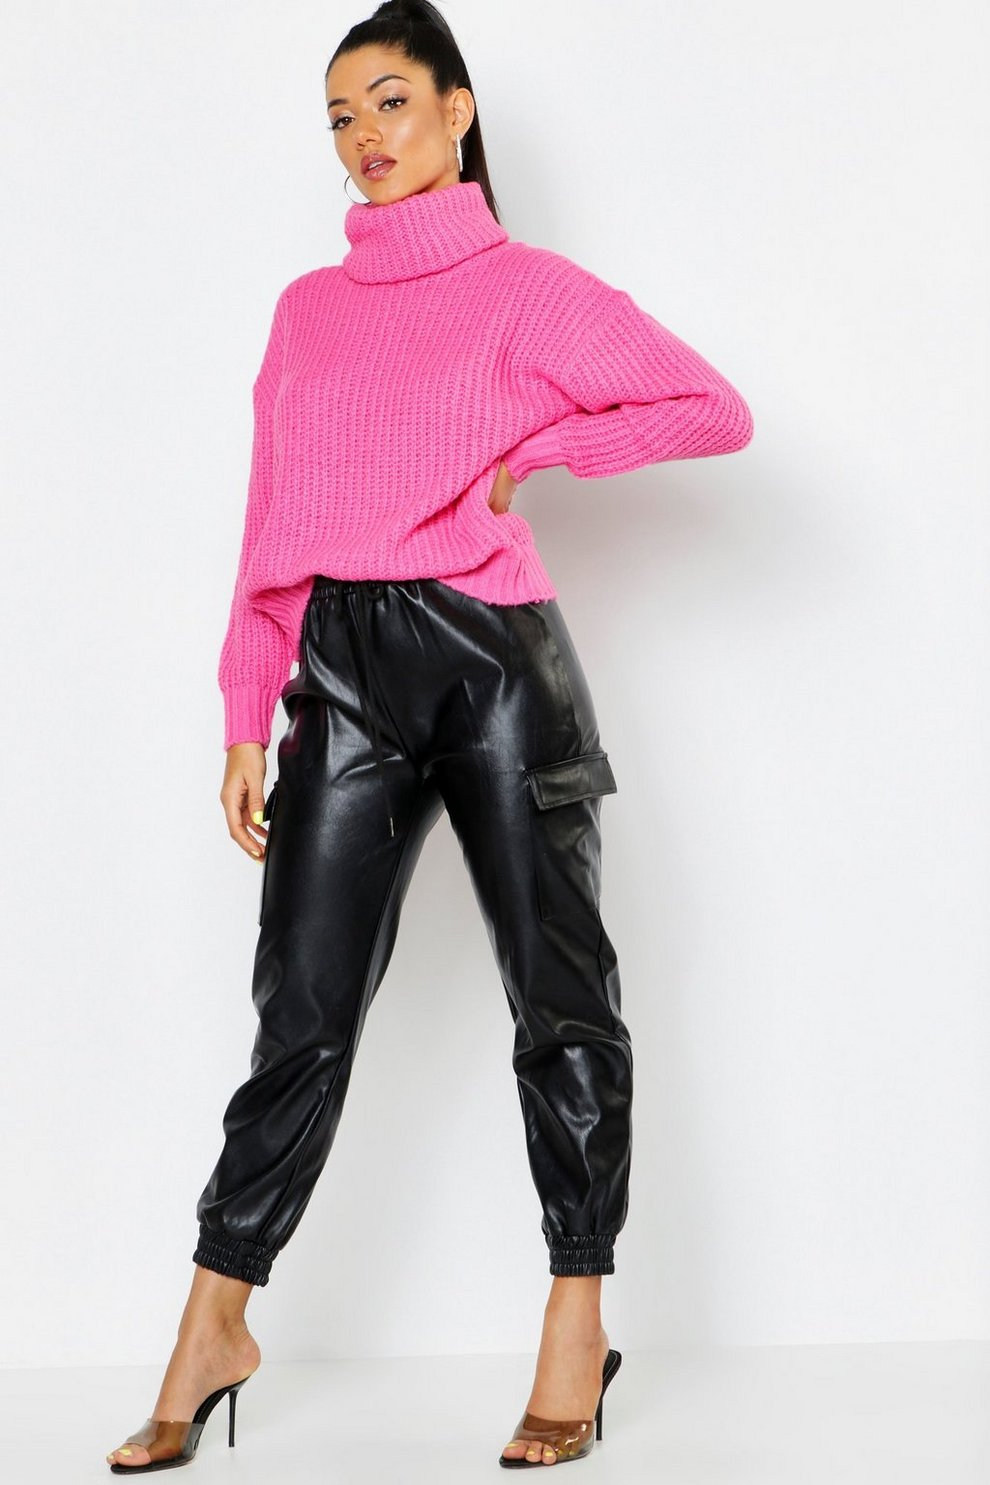 00751b7fa29765 Womens Neon-pink Oversized Roll Neck Rib Knit Sweater